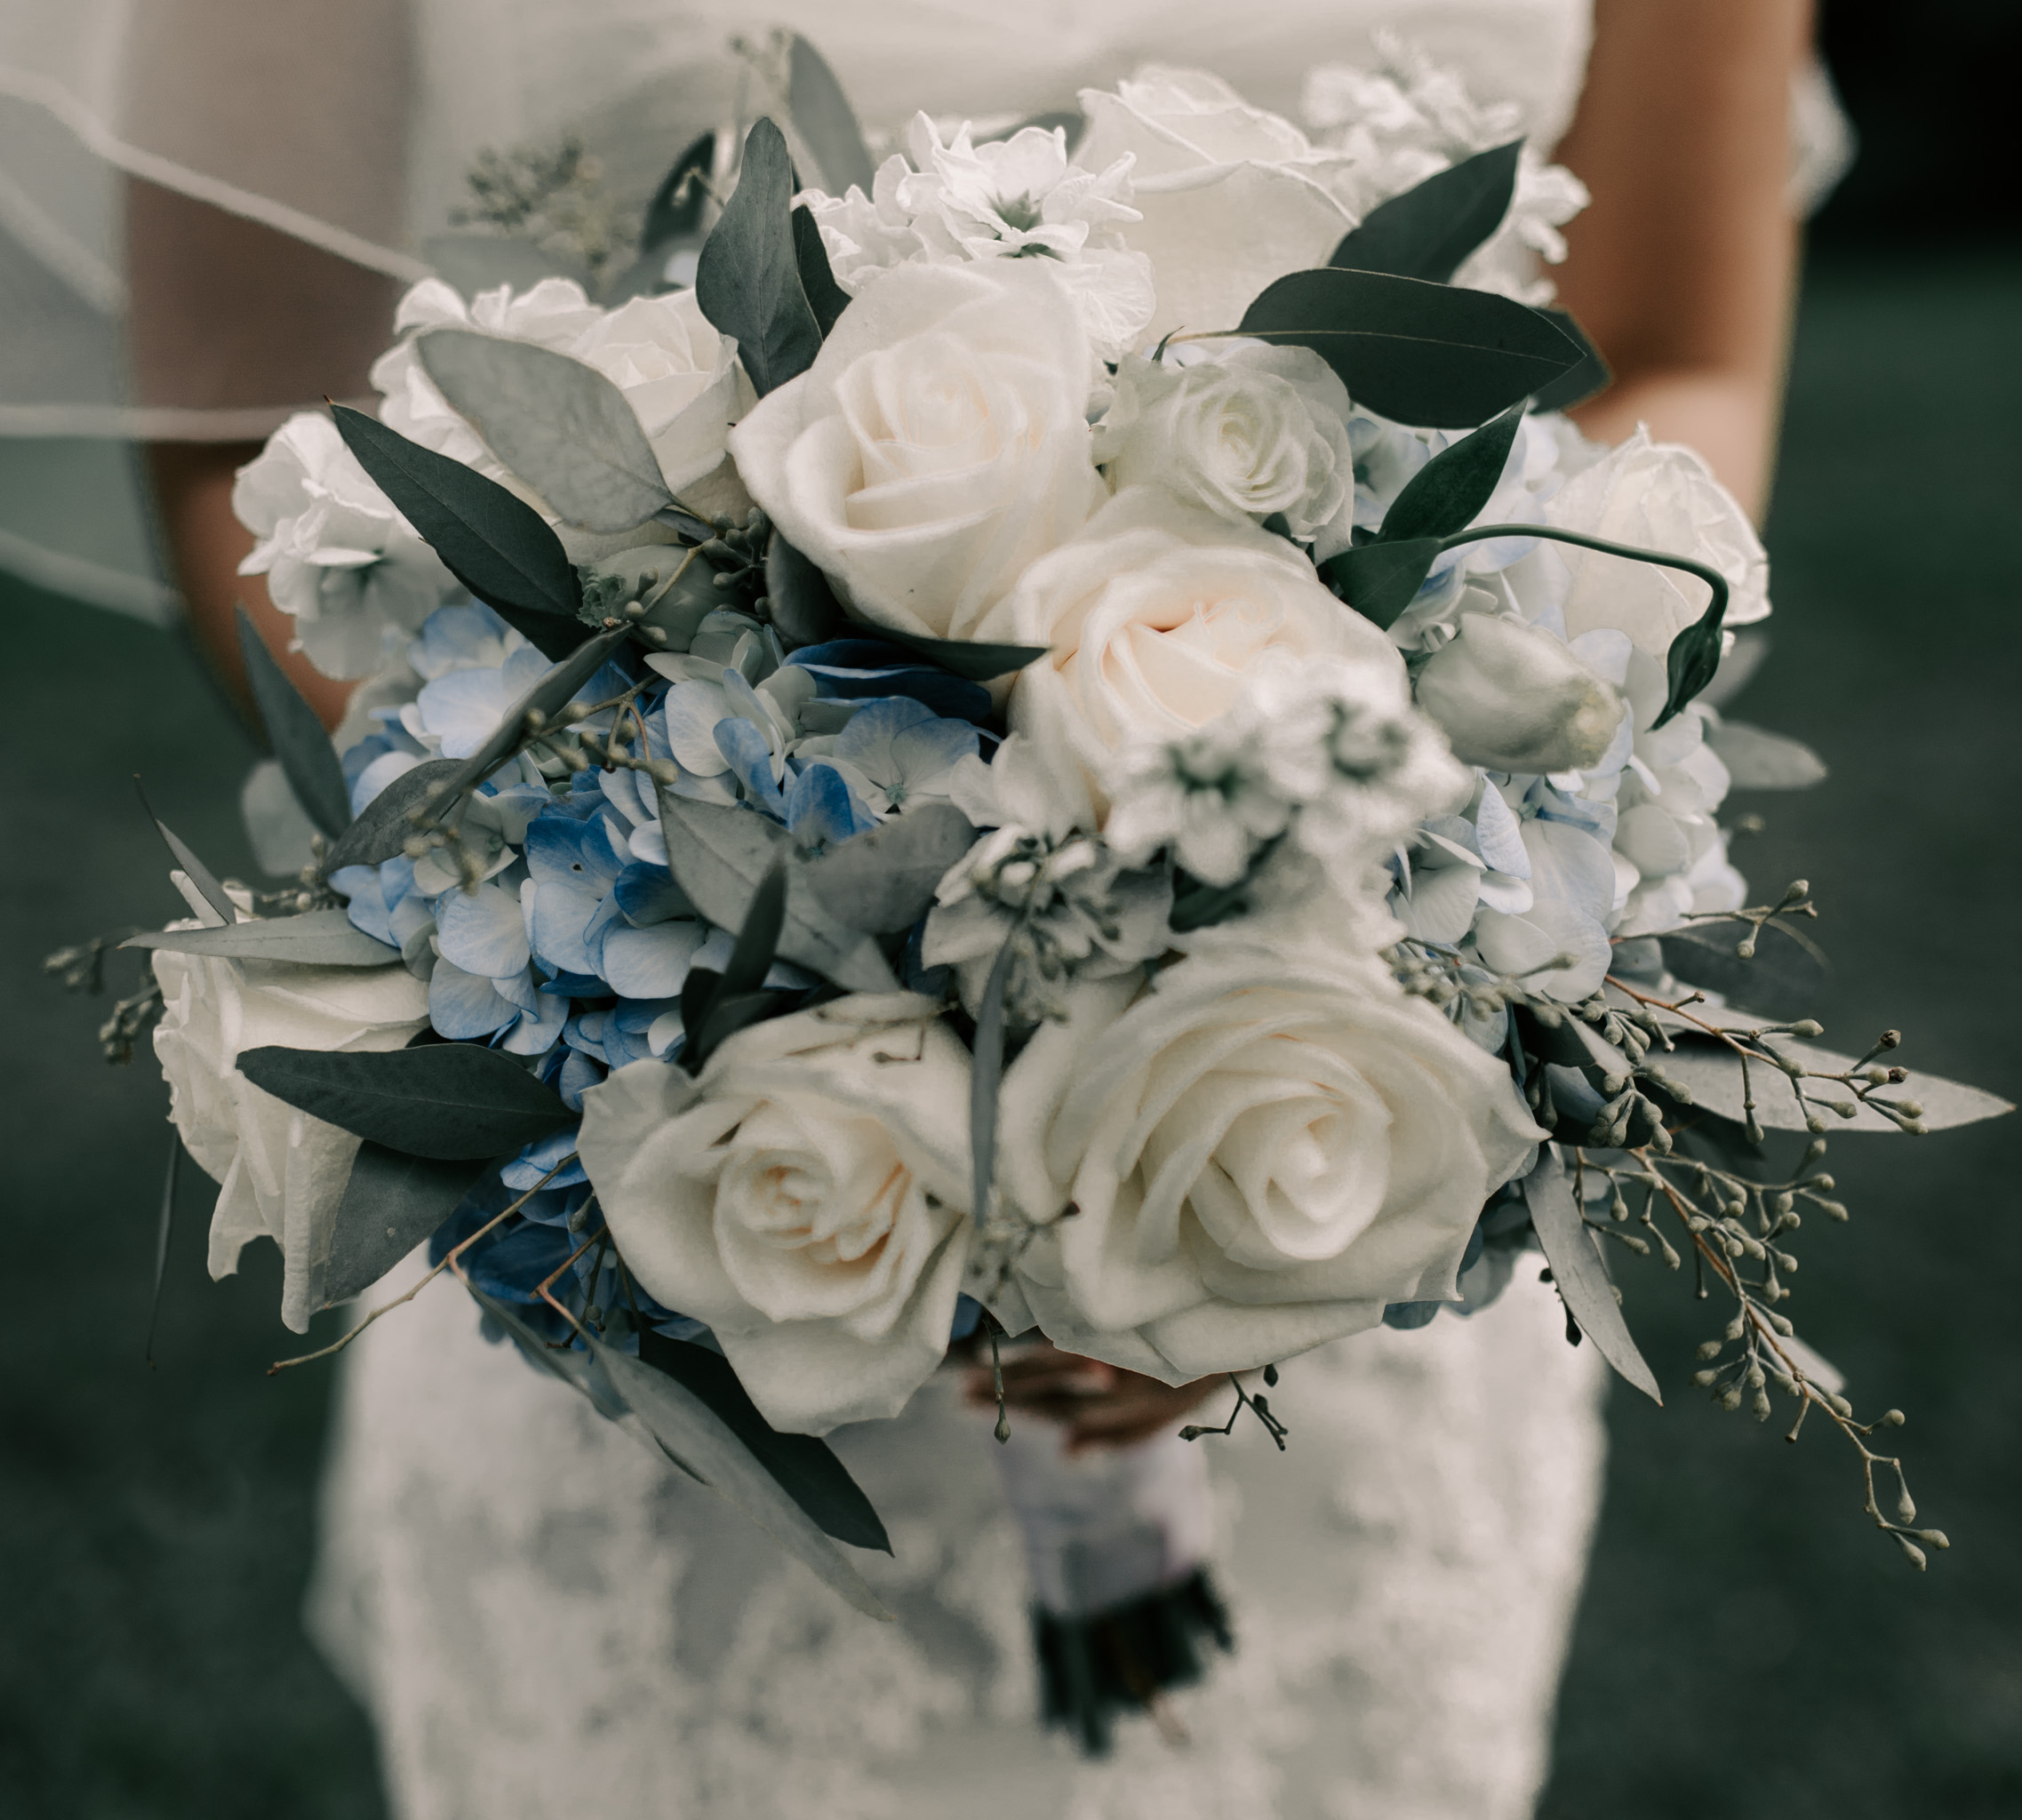 Bridal bouquet by J'Adore Floral Designs LLC. Photography by Hawaii fine art photographer Desiree Leilani